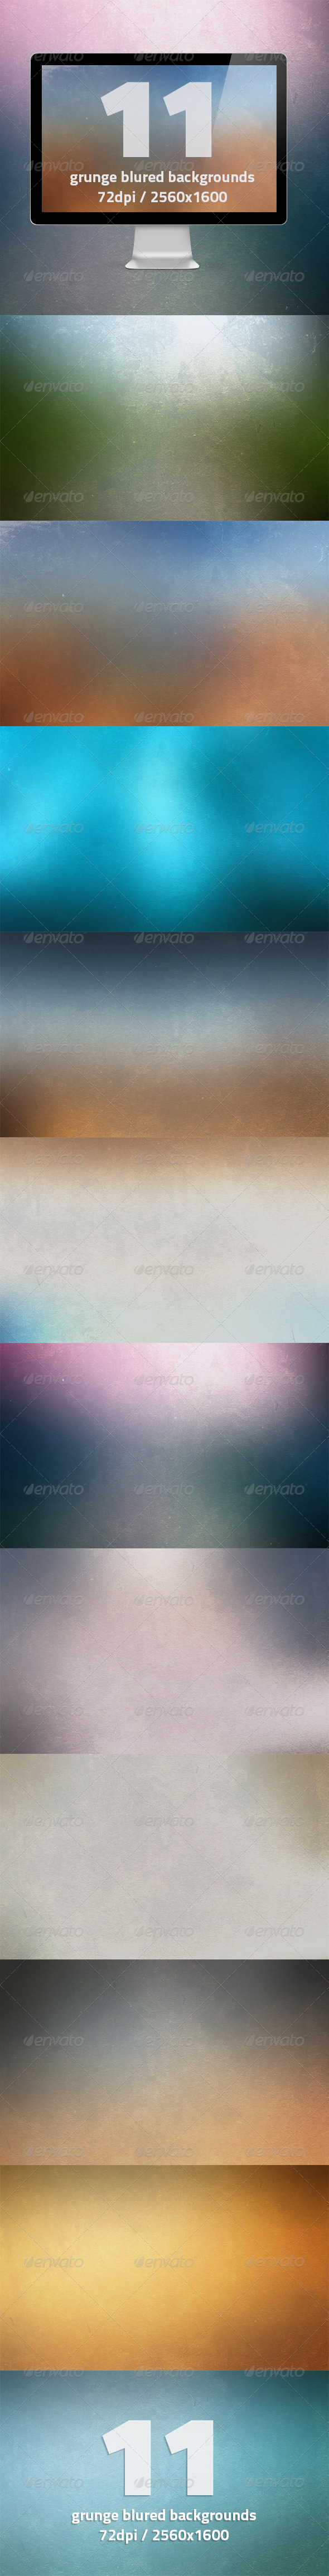 GraphicRiver 11 HQ Grunge Blurred Backgrounds 7020206